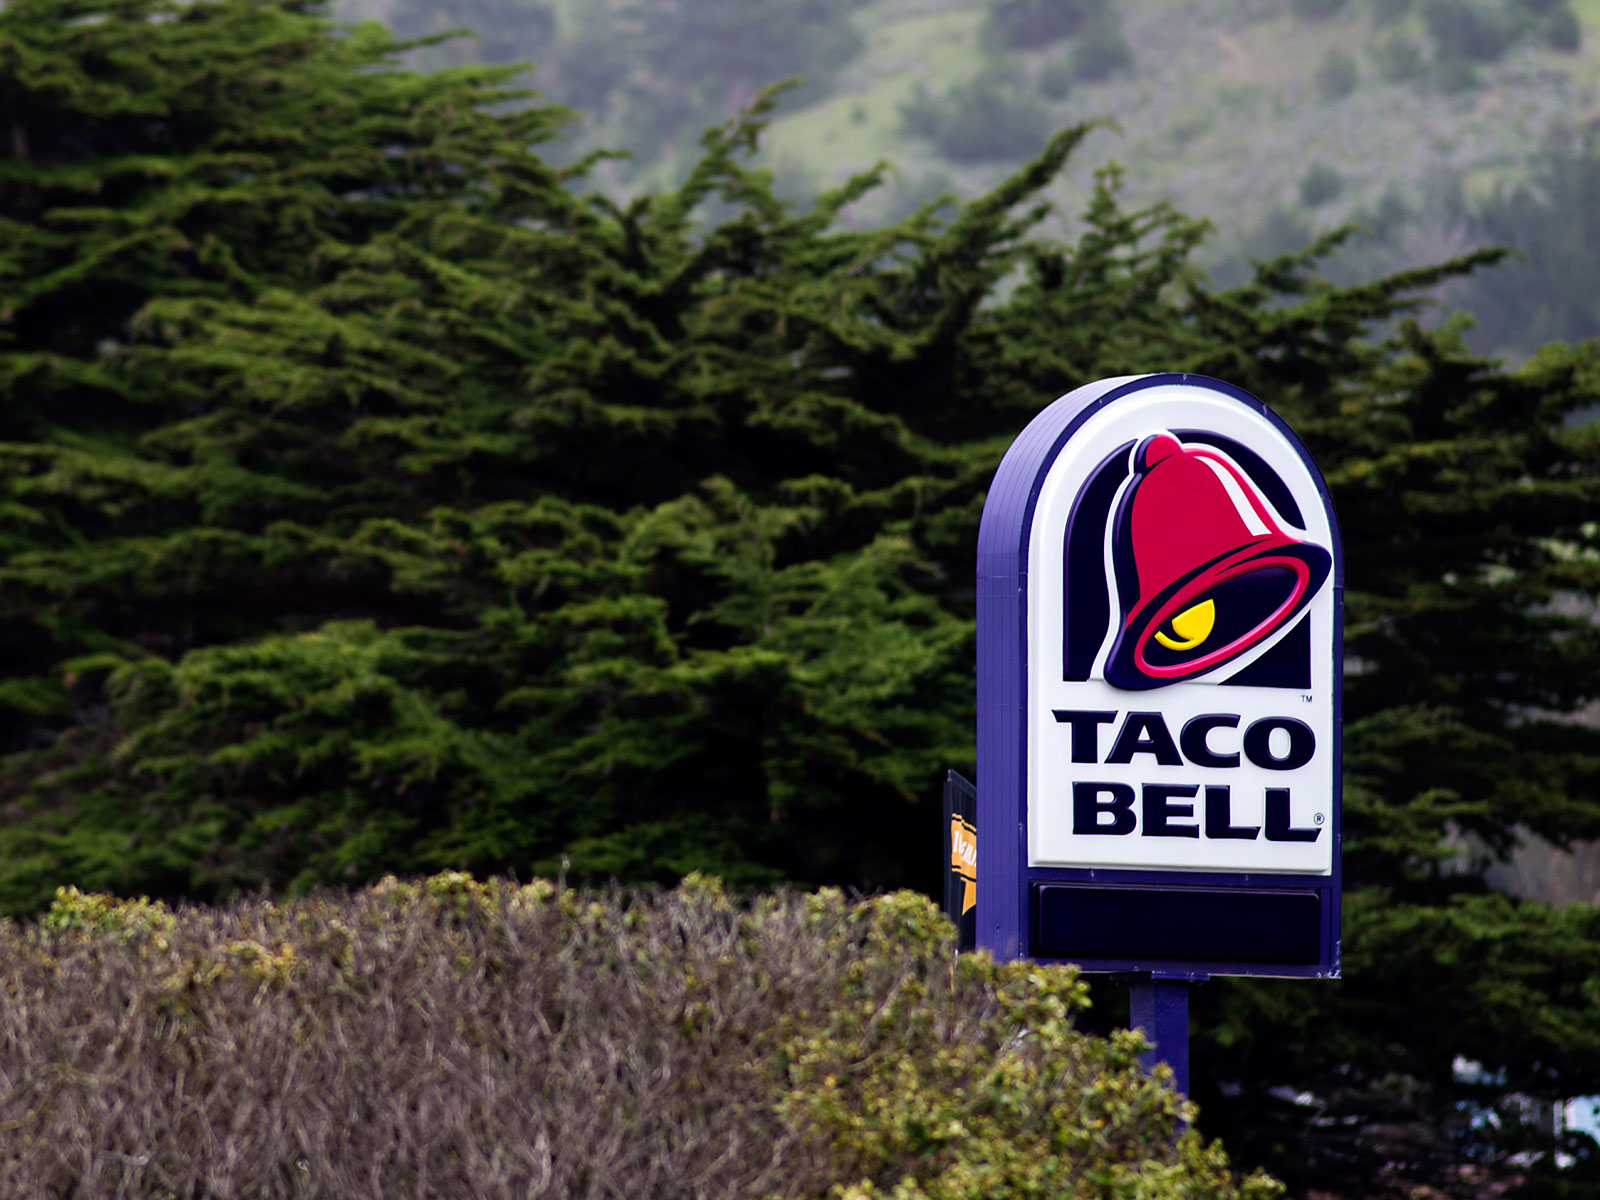 """""""Turn Left at Taco Bell""""—Google Maps Uses Fast Food Restaurants to Give Directions"""